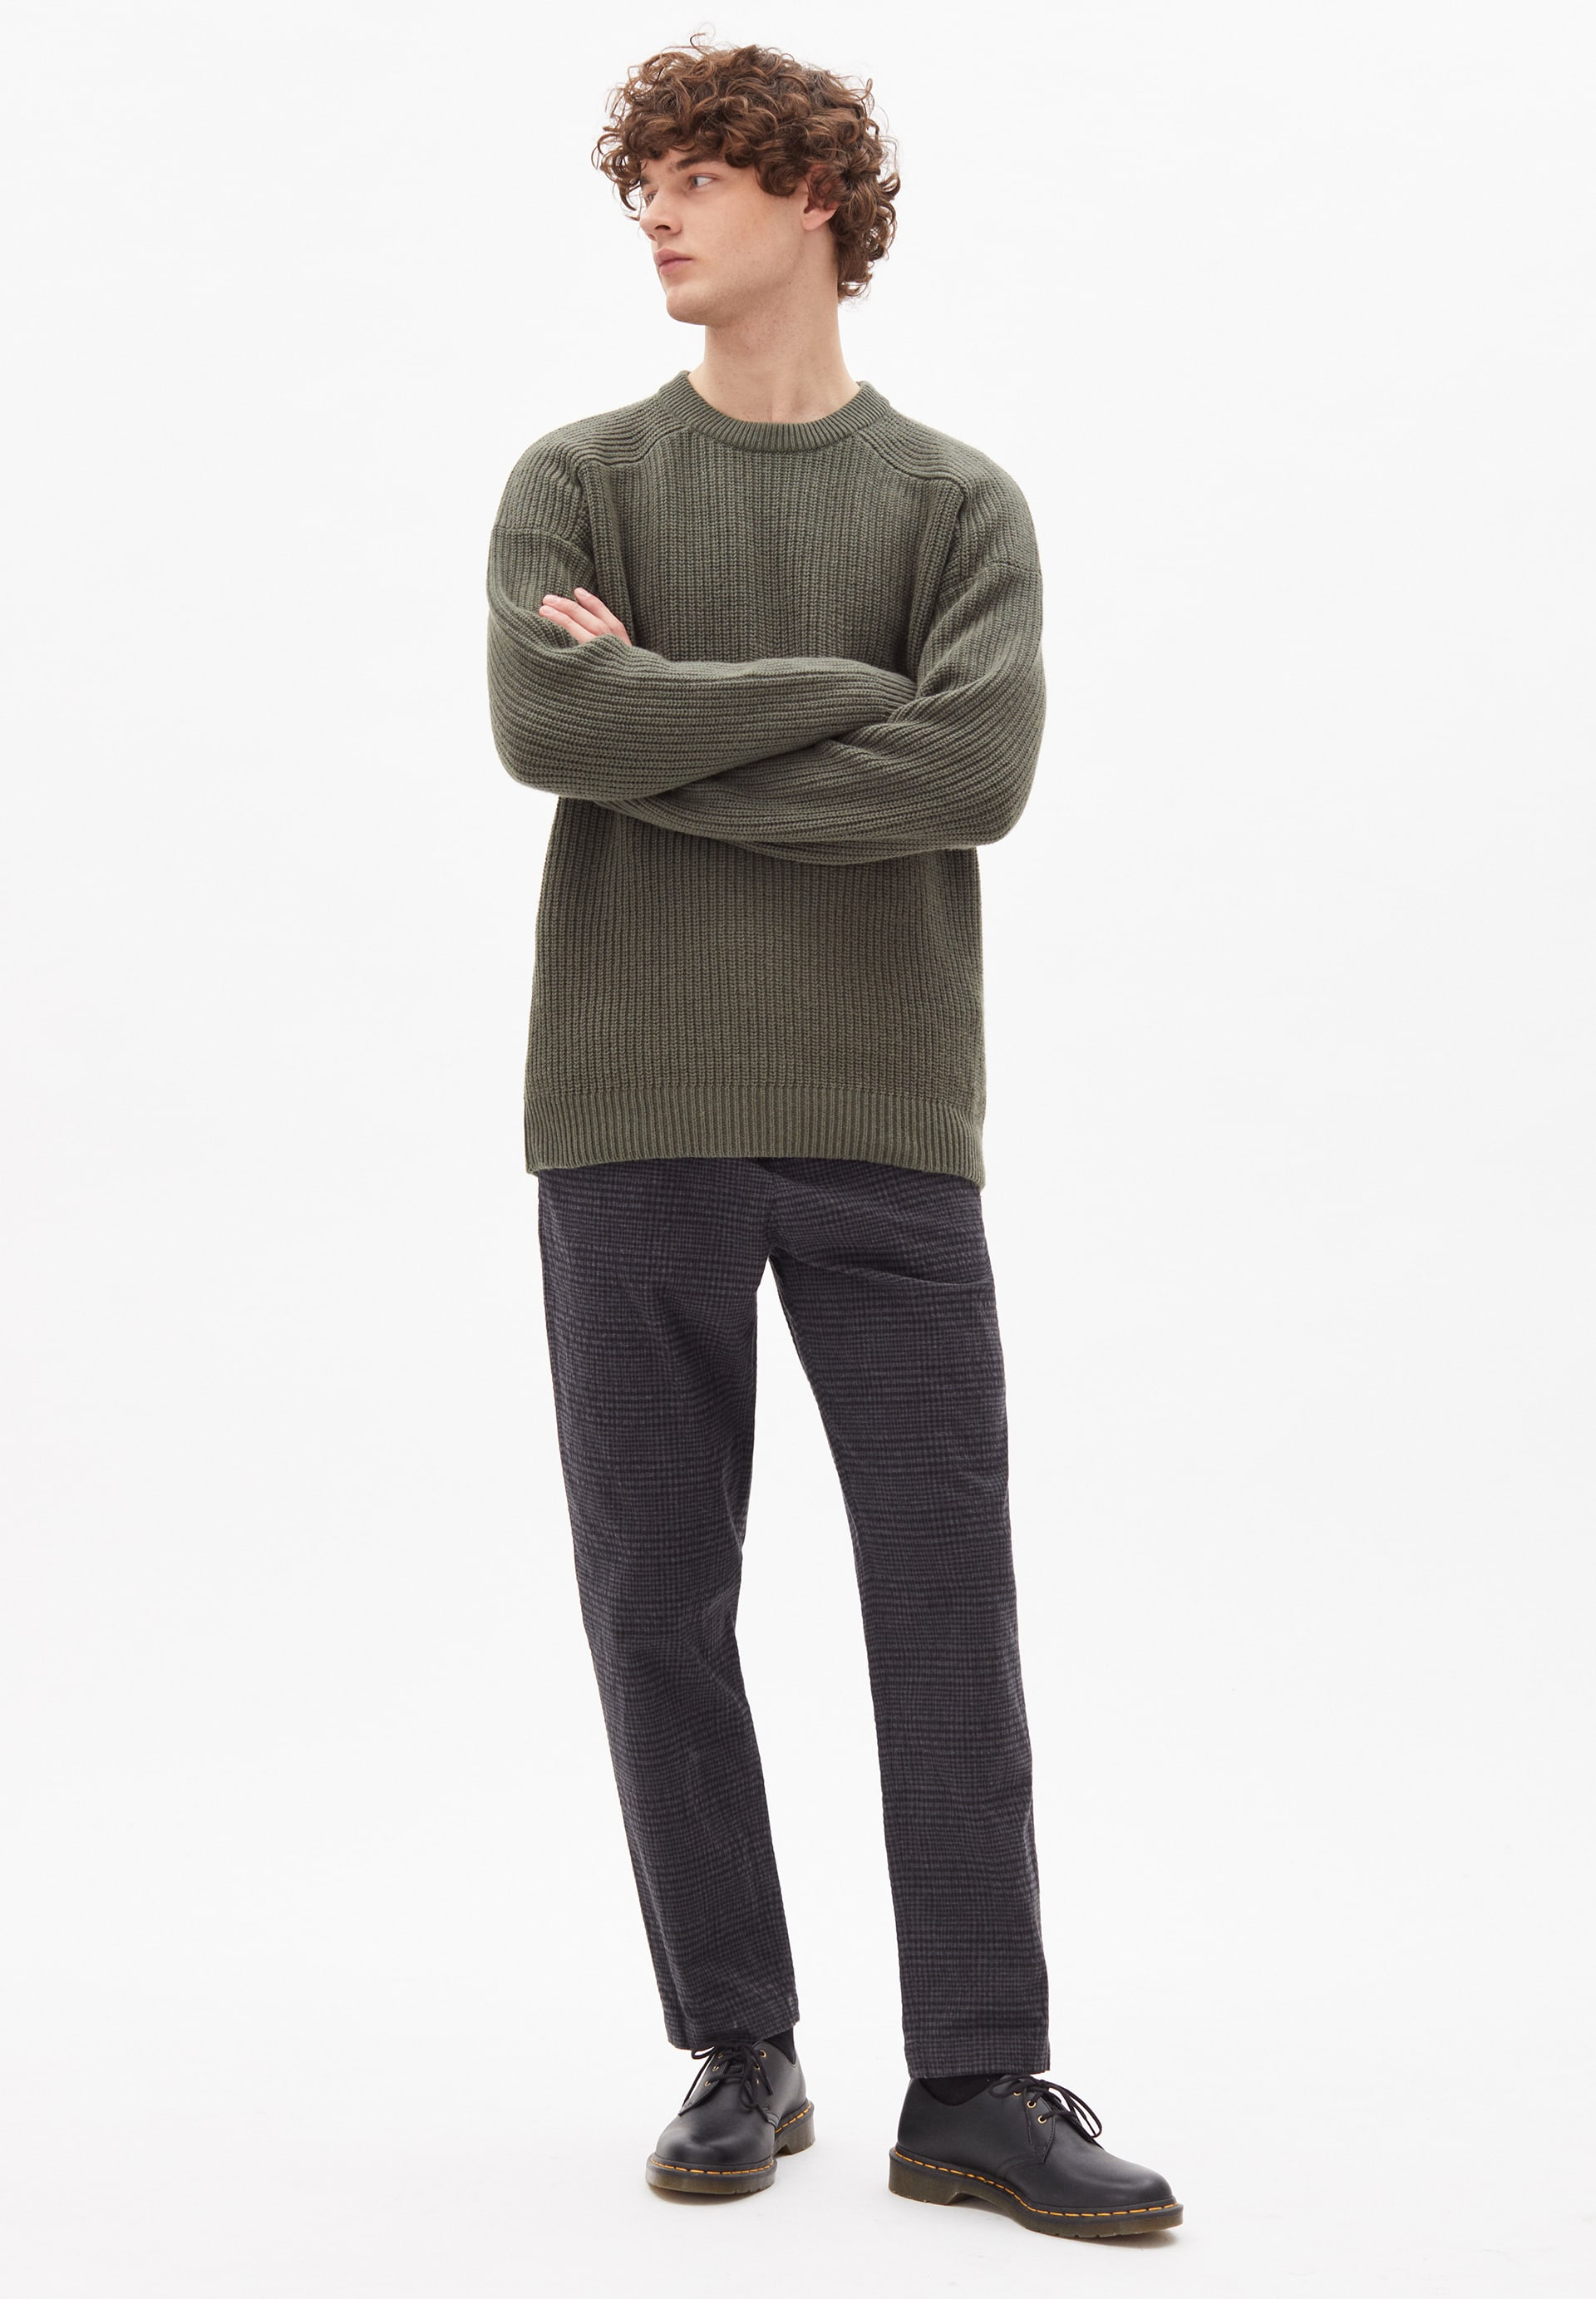 AARVIS Sweater made of Organic Cotton Mix